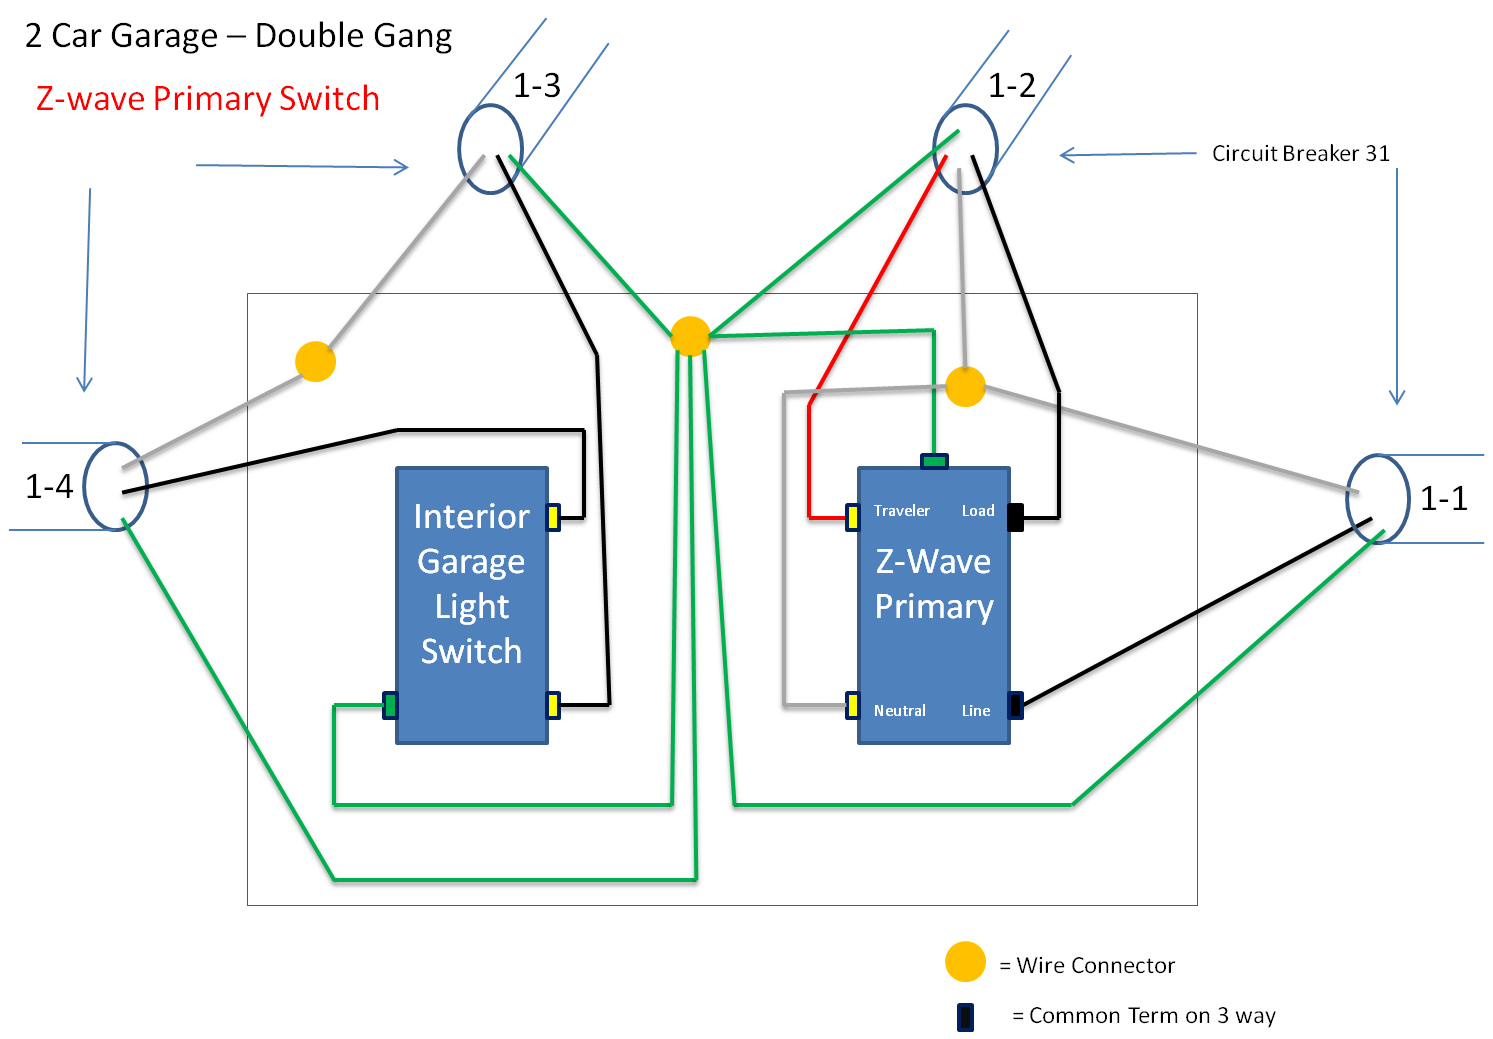 House Wiring Diagram Lighting House Wiring Diagrams Light Switch